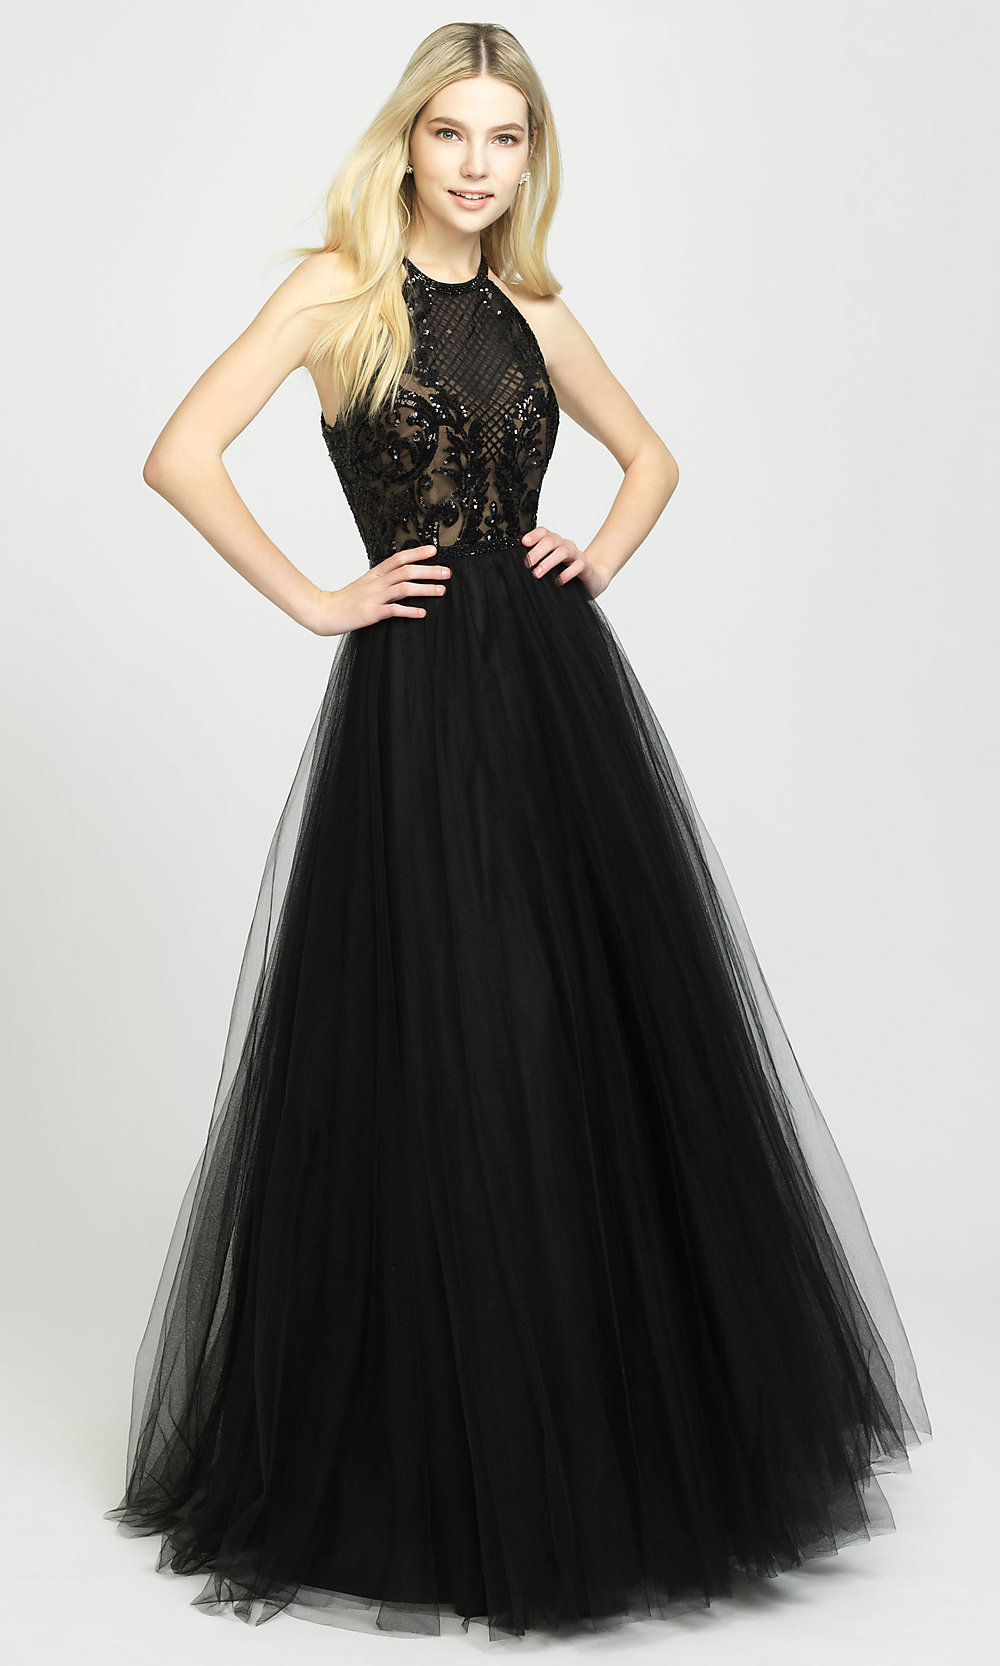 Tulle Ball-Gown-Style Designer Prom Dress - PromGirl